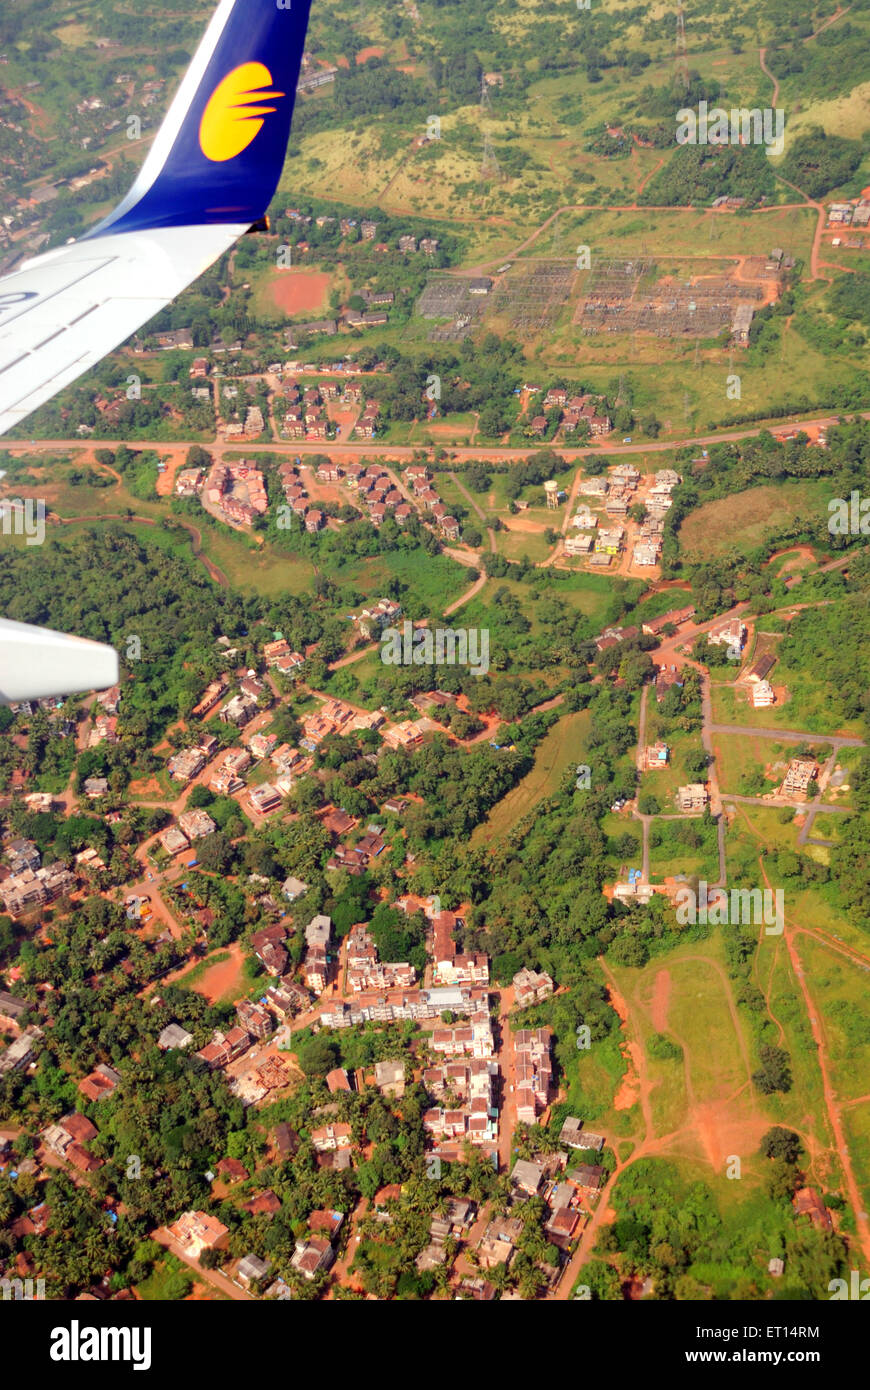 Aerial view of housing colony and aircraft wing ; Goa ; India - Stock Image